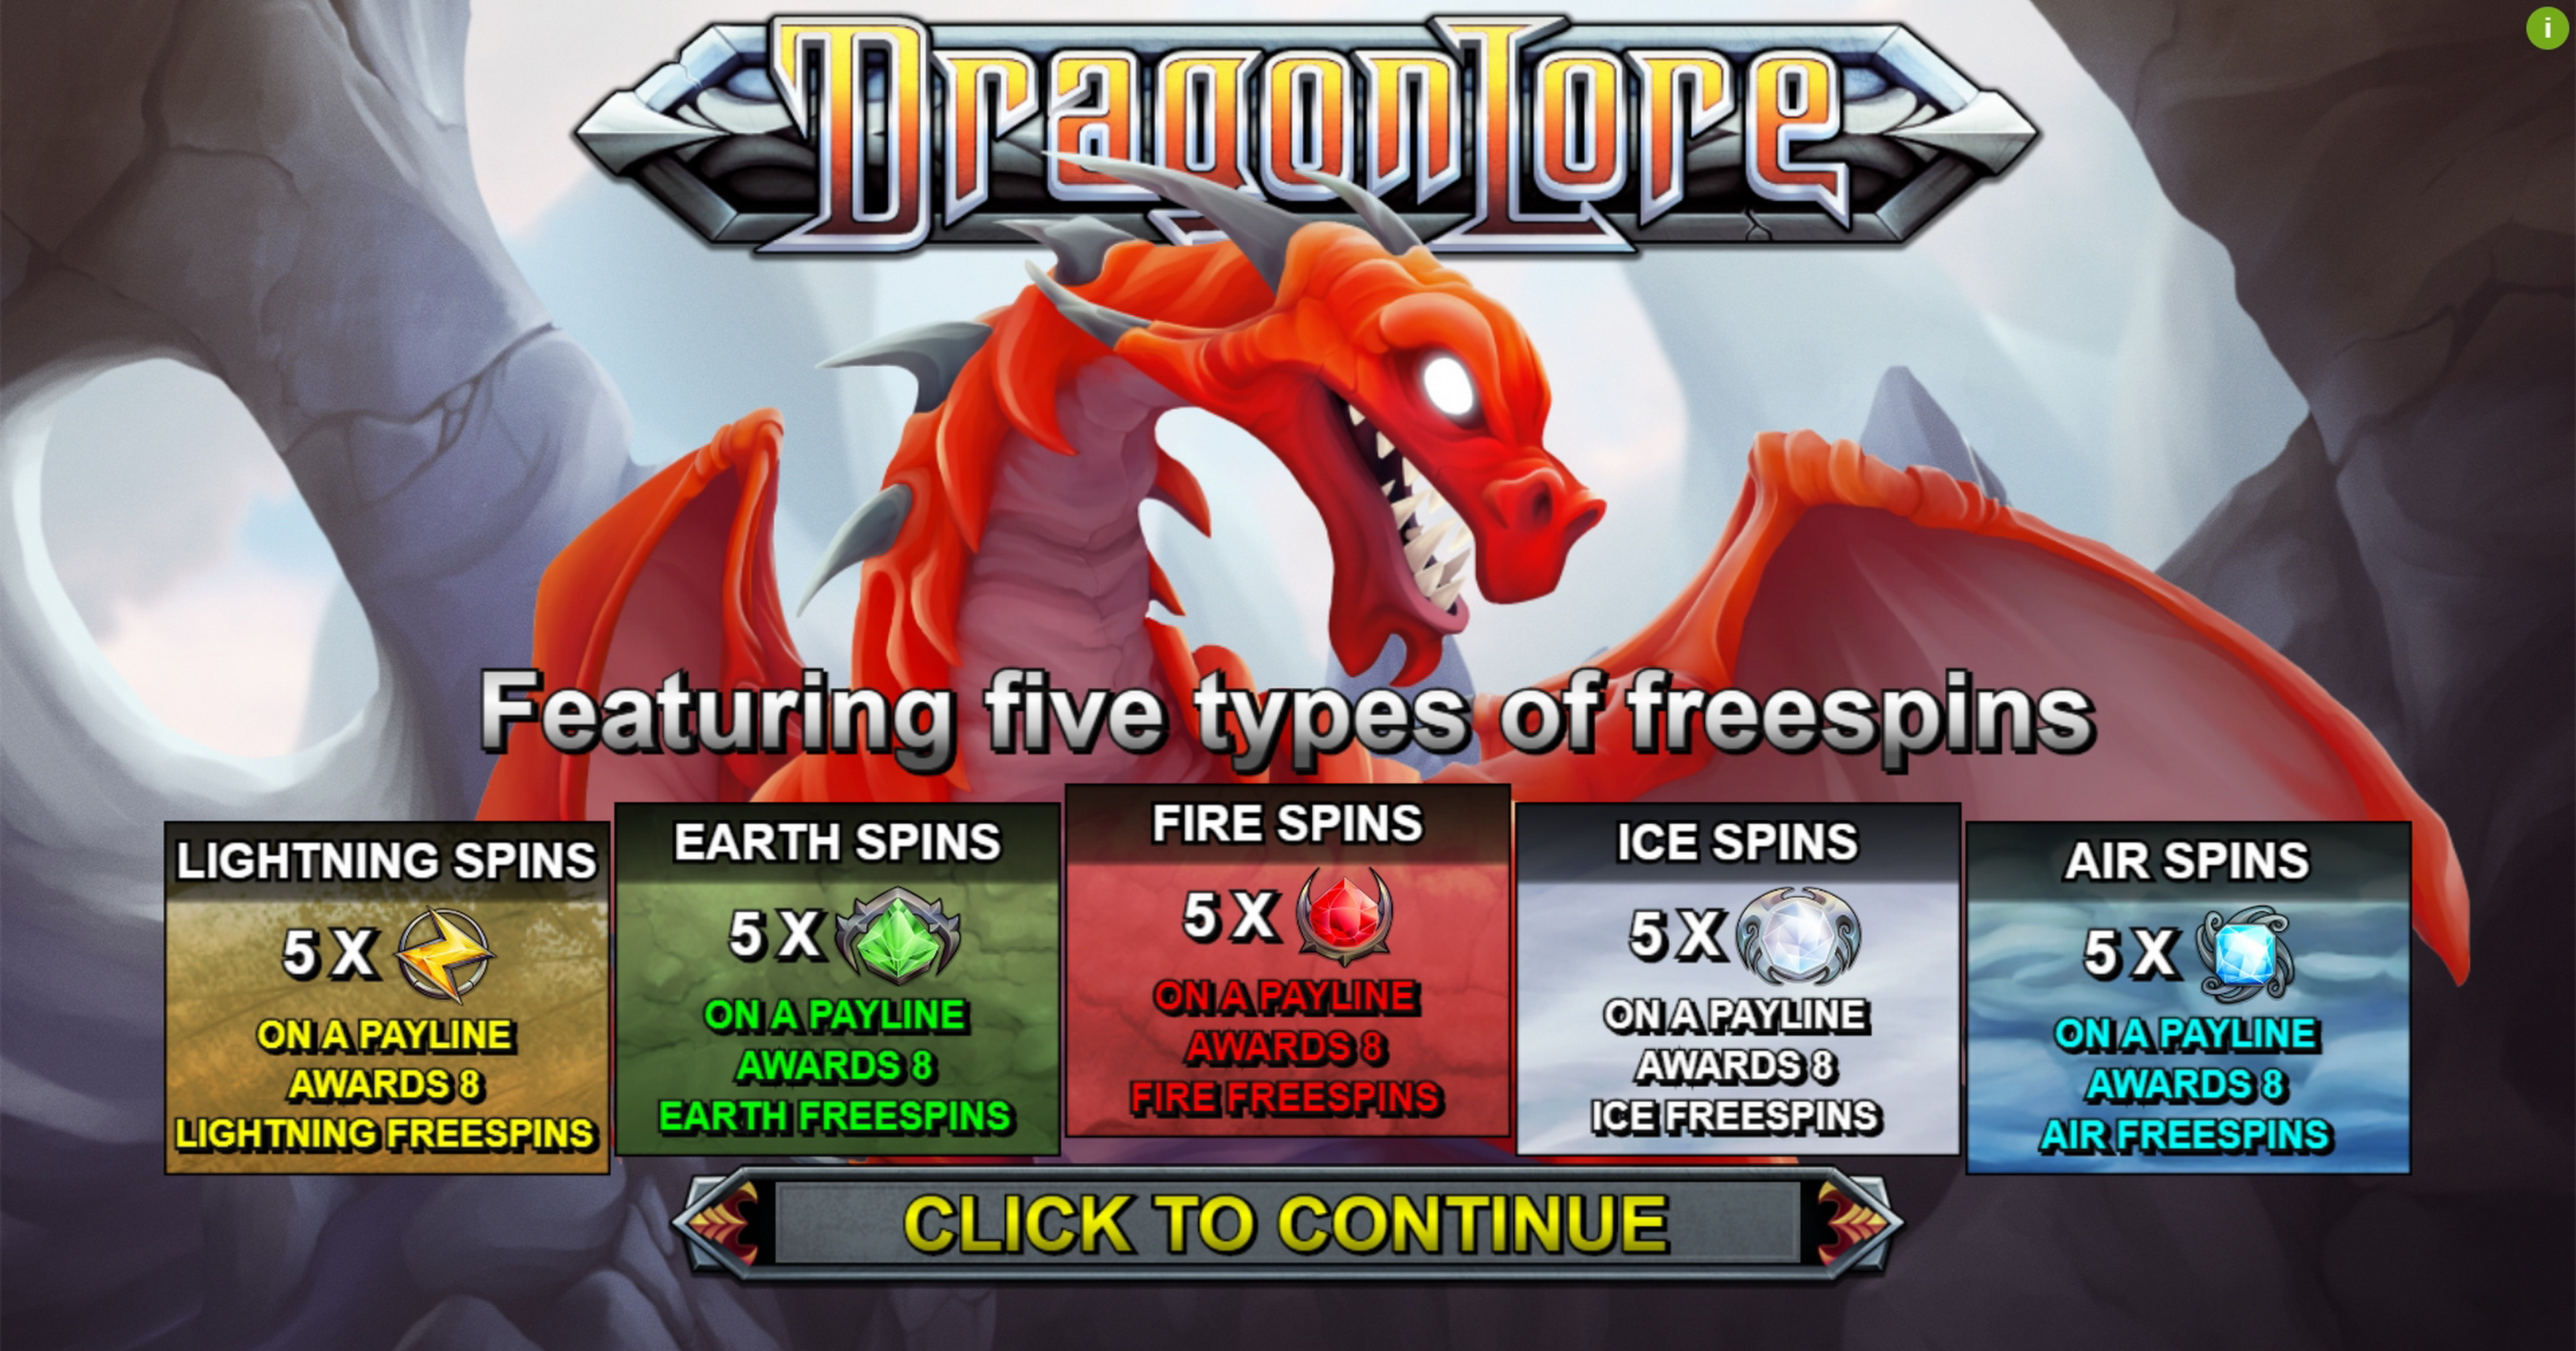 Play Dragon Lore Free Casino Slot Game by Bulletproof Games